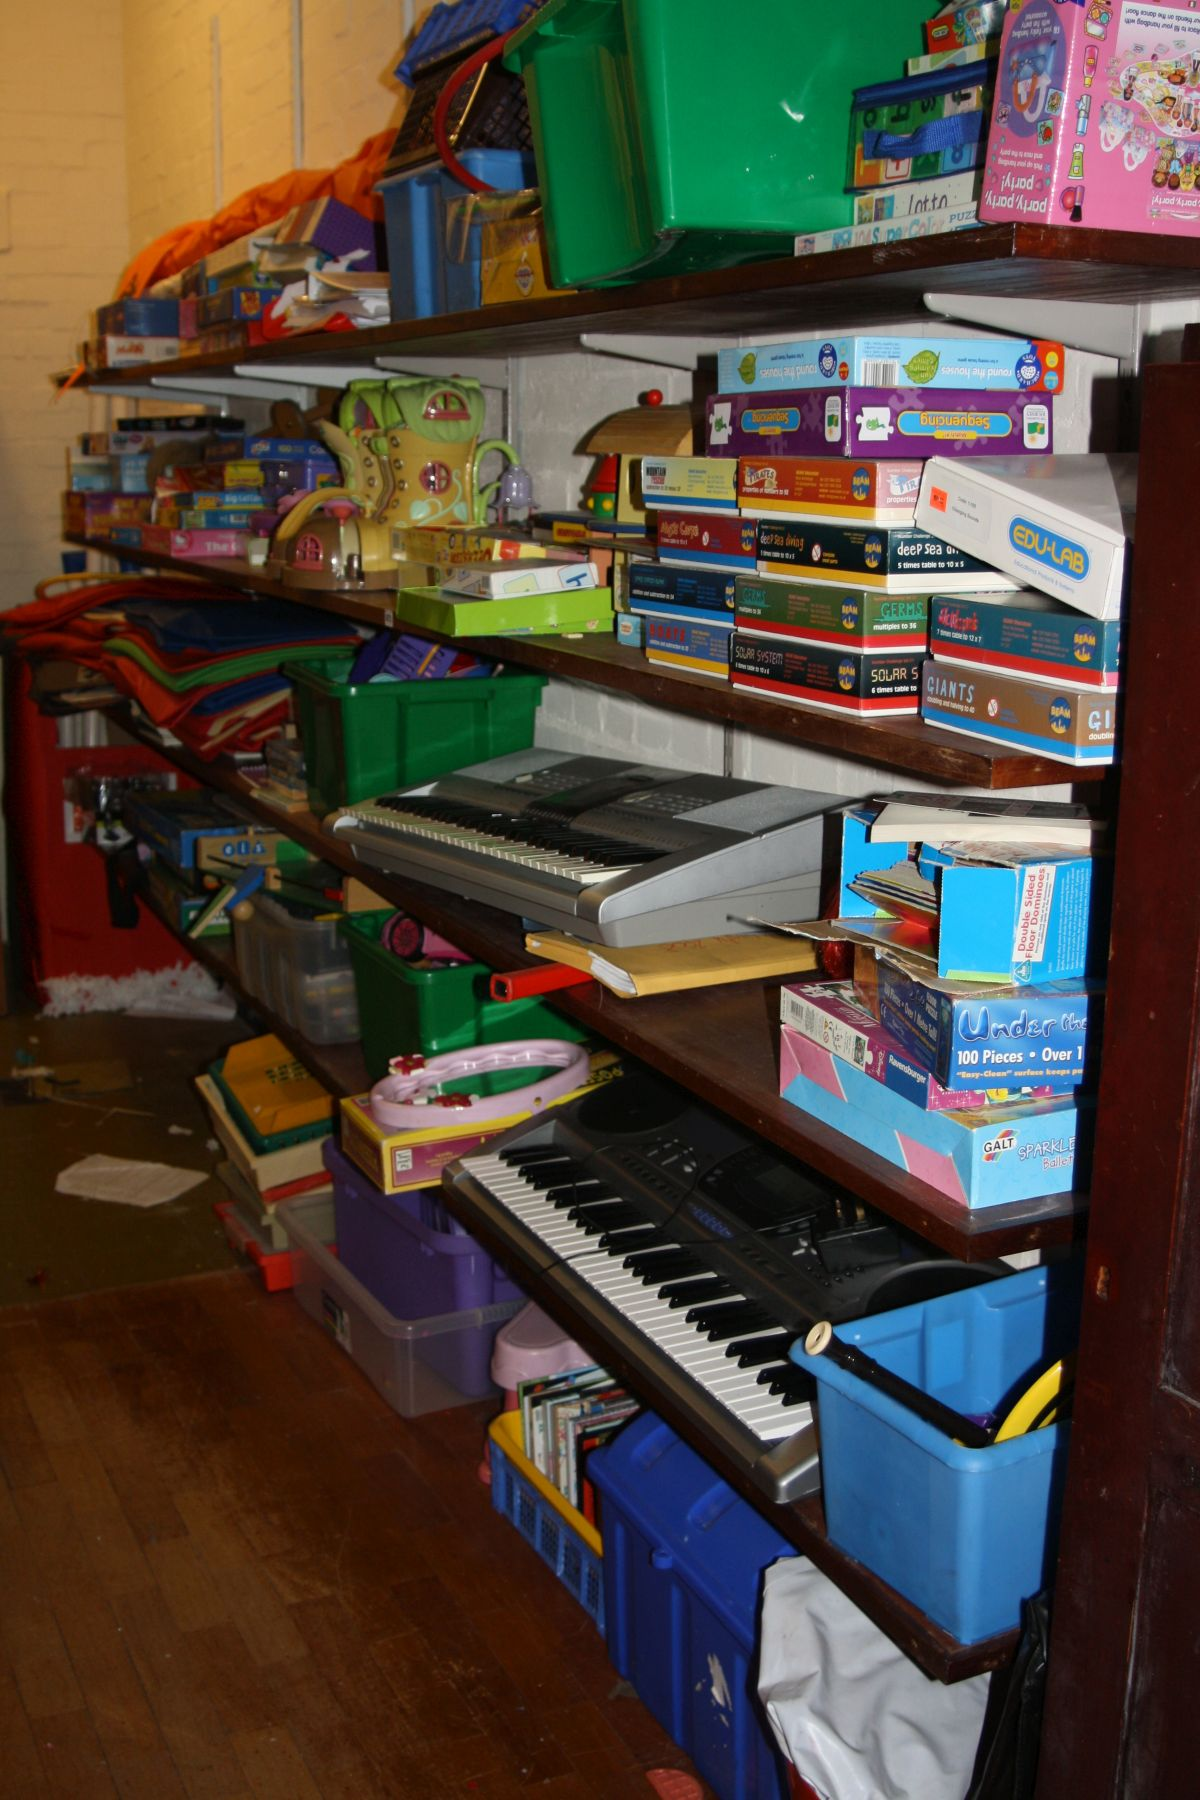 Lot 873 - THE CONTENTS OF FIVE SHELVES, including electronic keyboards, toys, games, etc